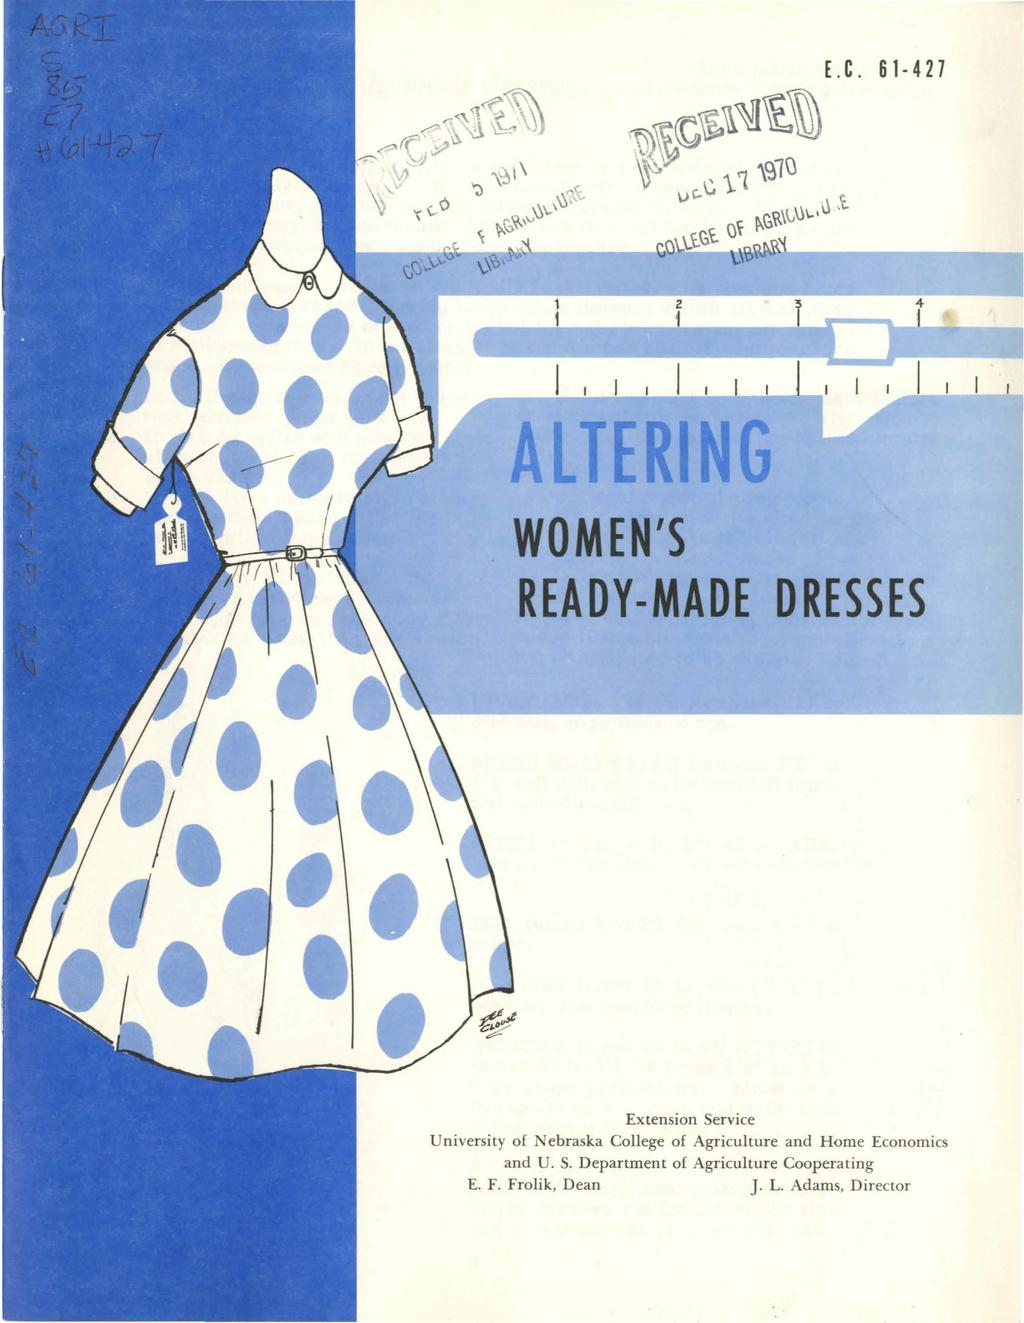 R WOMEN'S READY-MADE DRESSES Extension Service University of Nebraska College of Agriculture and